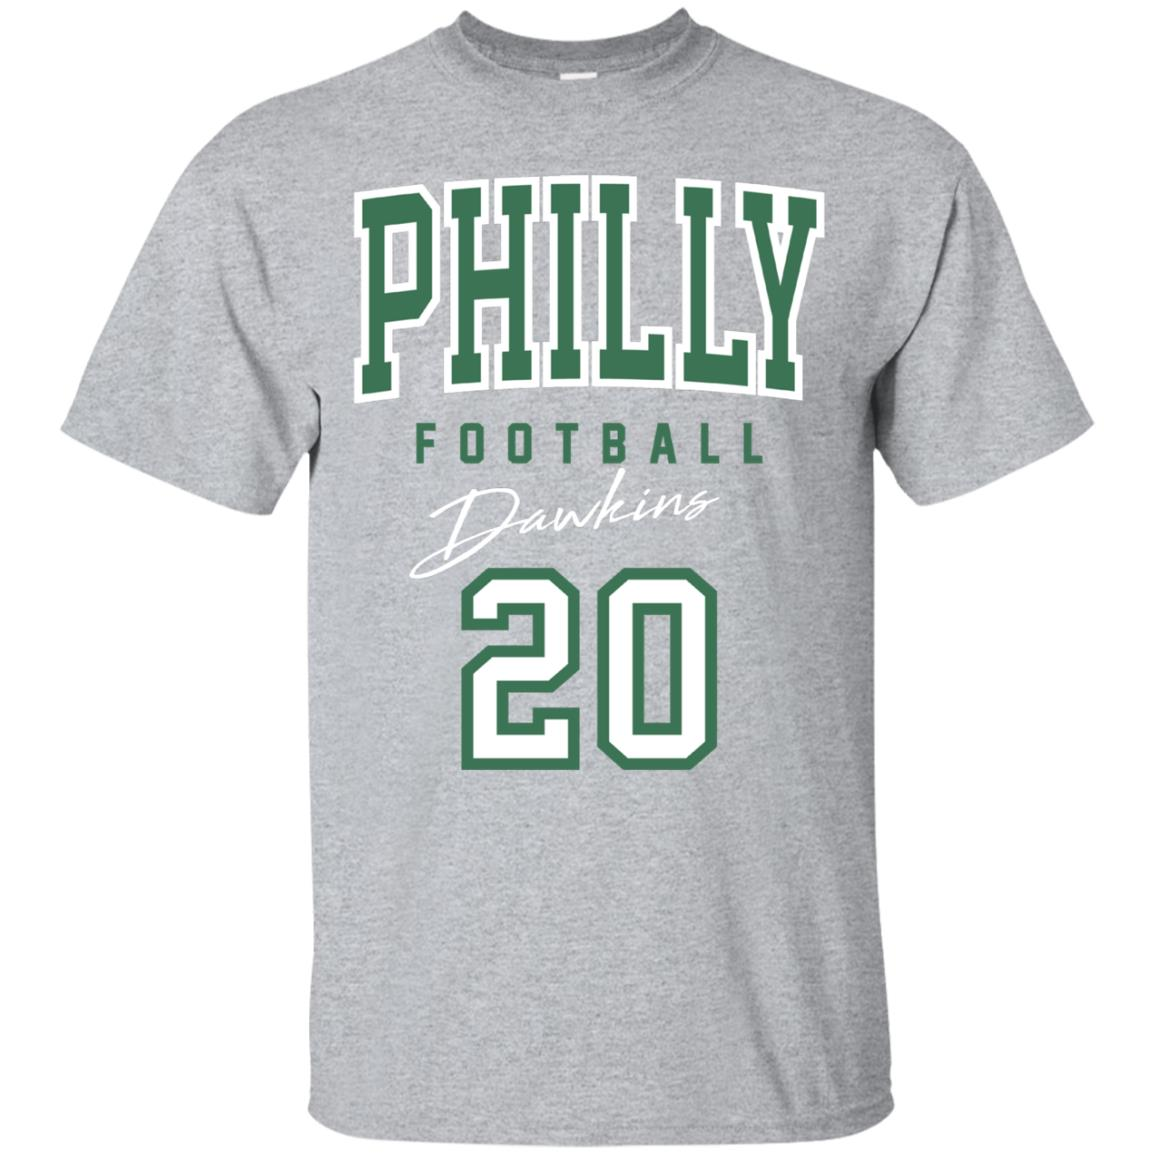 Philadelphia Dawkins Football Long Sleeve Shirt 99promocode